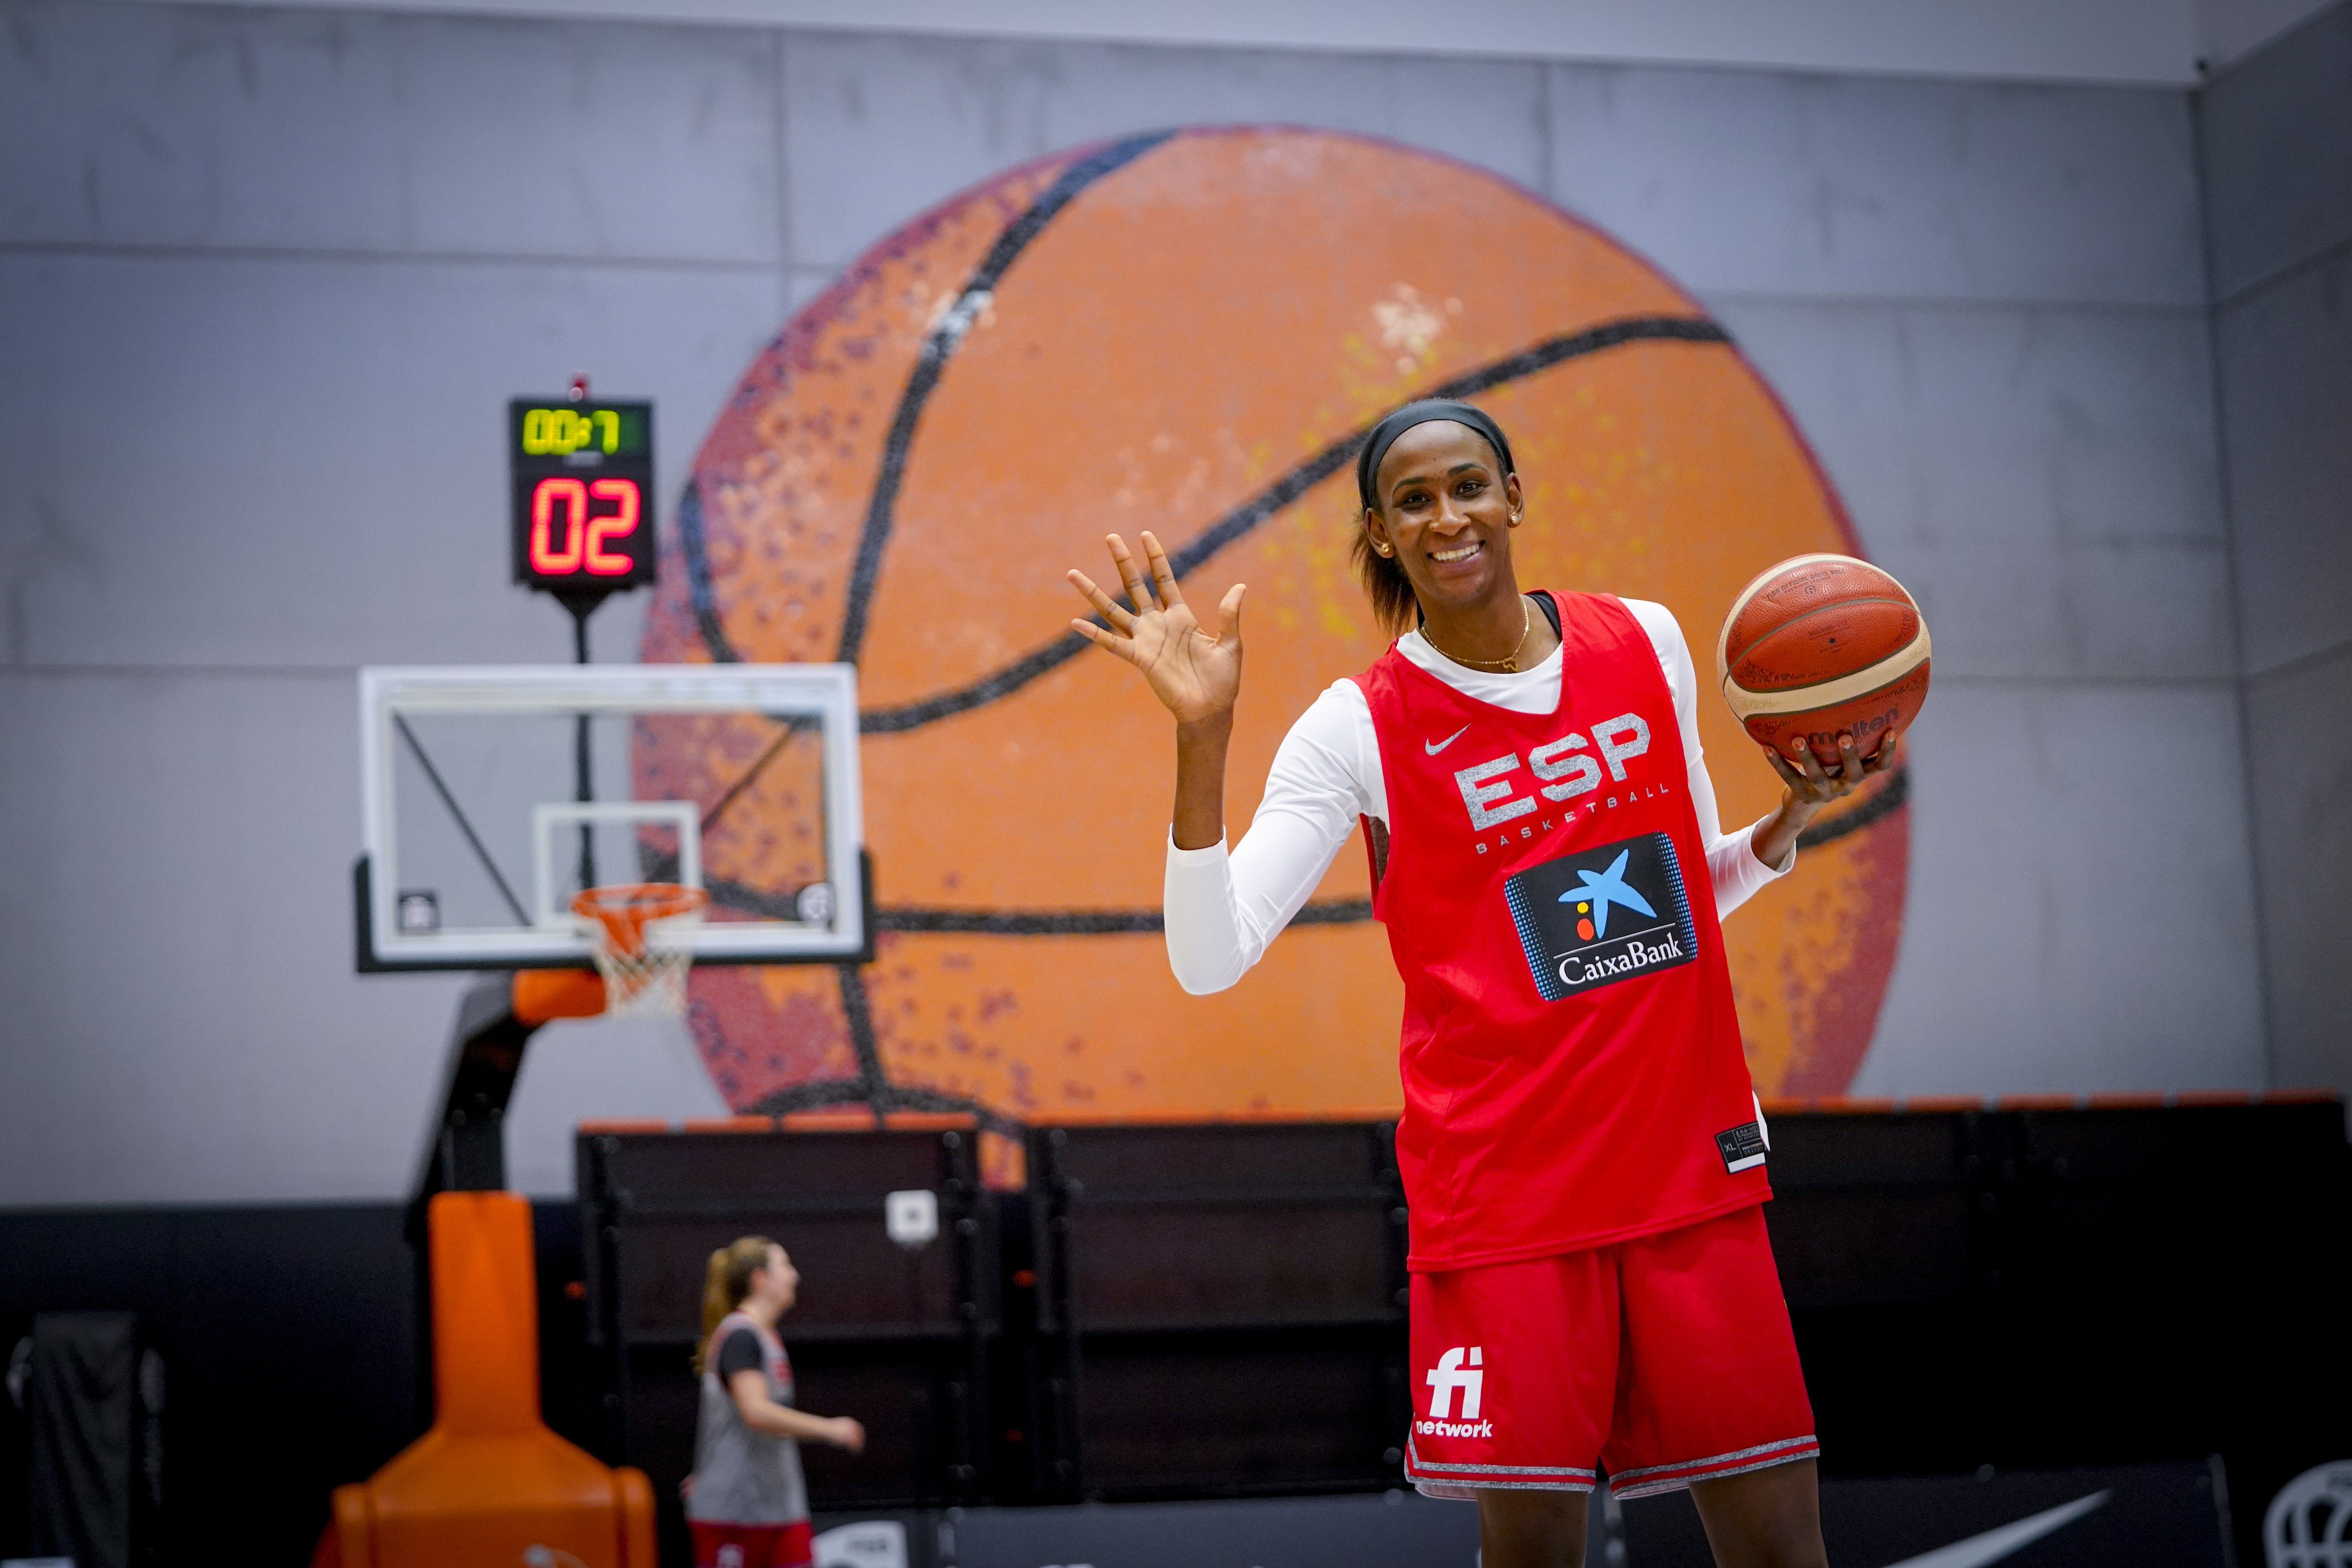 Guide to Womens Basketball at the Tokyo 2020 Olympics Groups